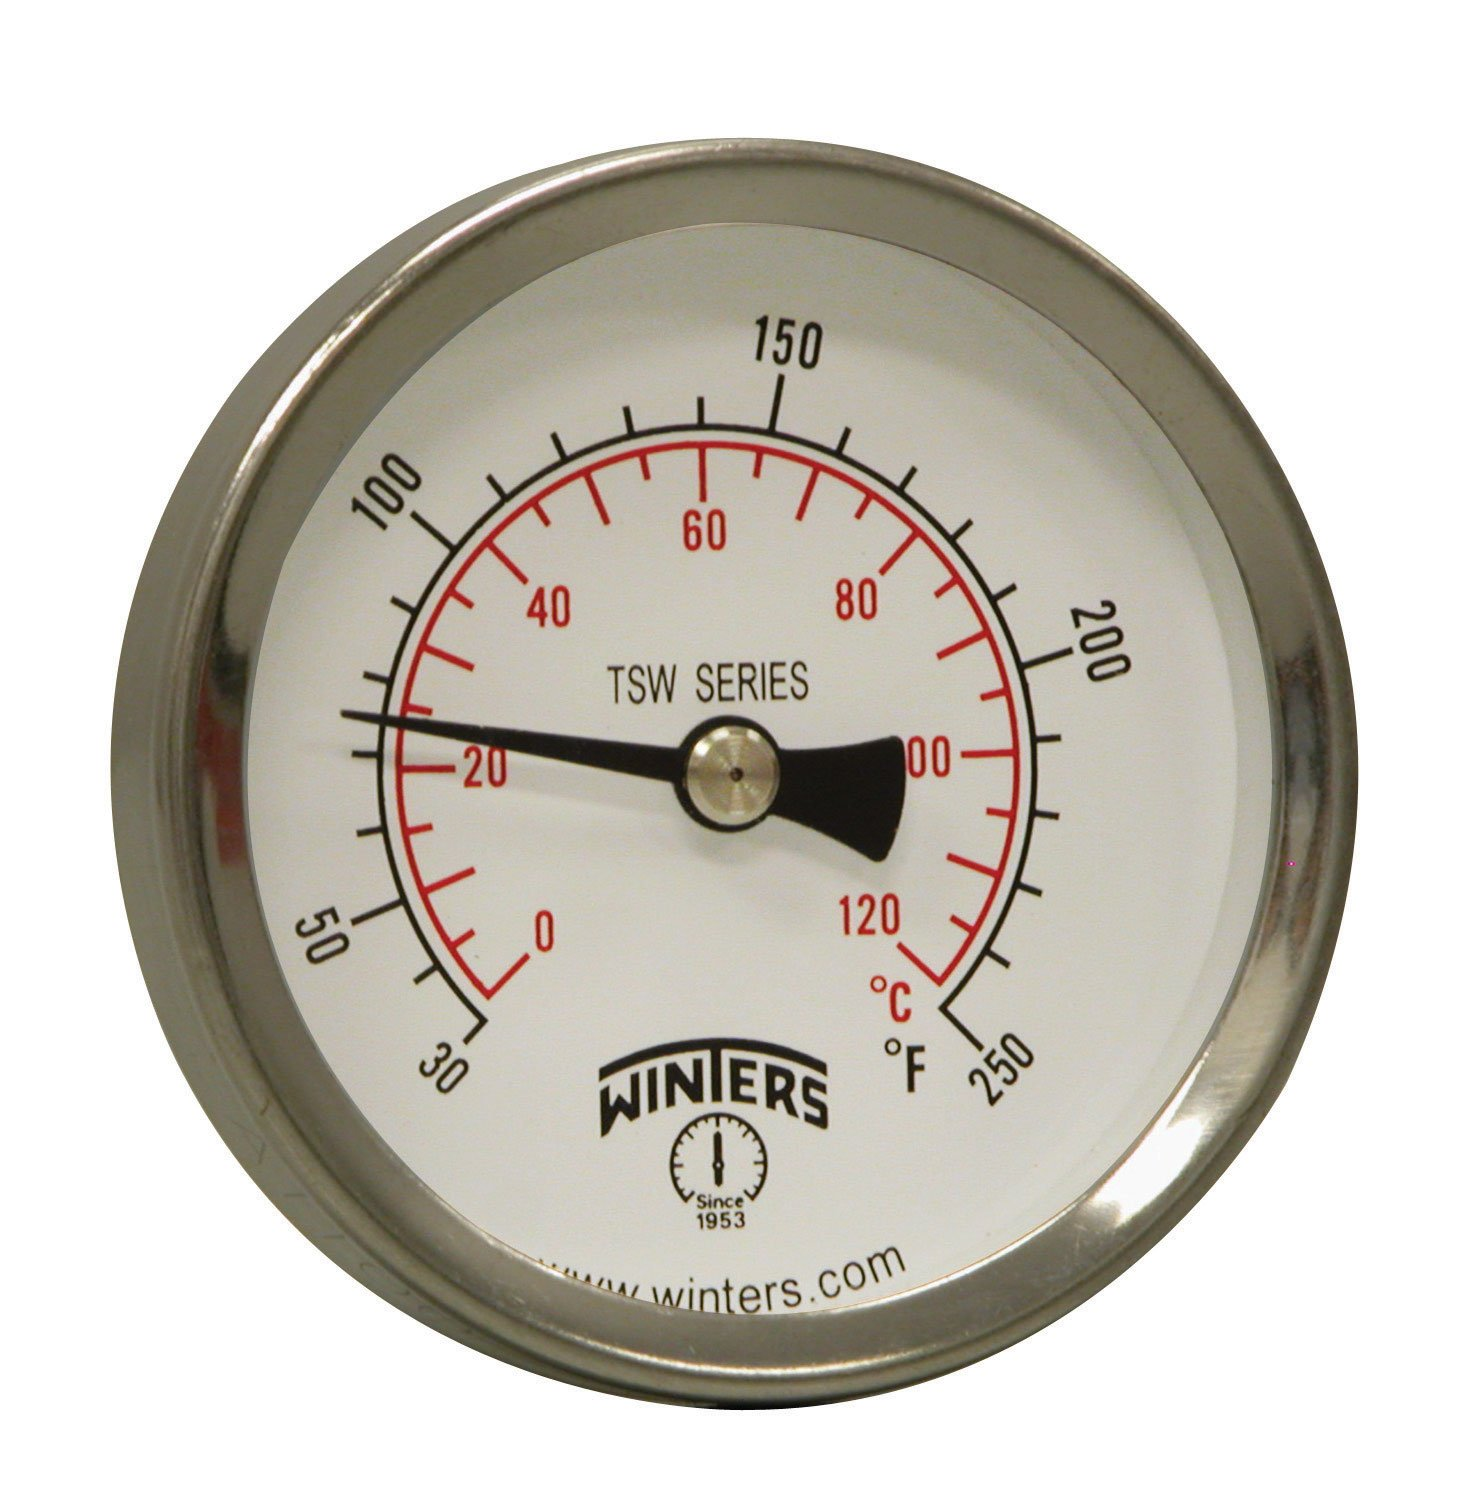 "Winters TSW Series Aluminum Dual Scale Hot Water Thermometer, Dial Type, 2-1/2"" Dial, 1/2"" NPT Center Back Mount, 30-250 F/C Range"